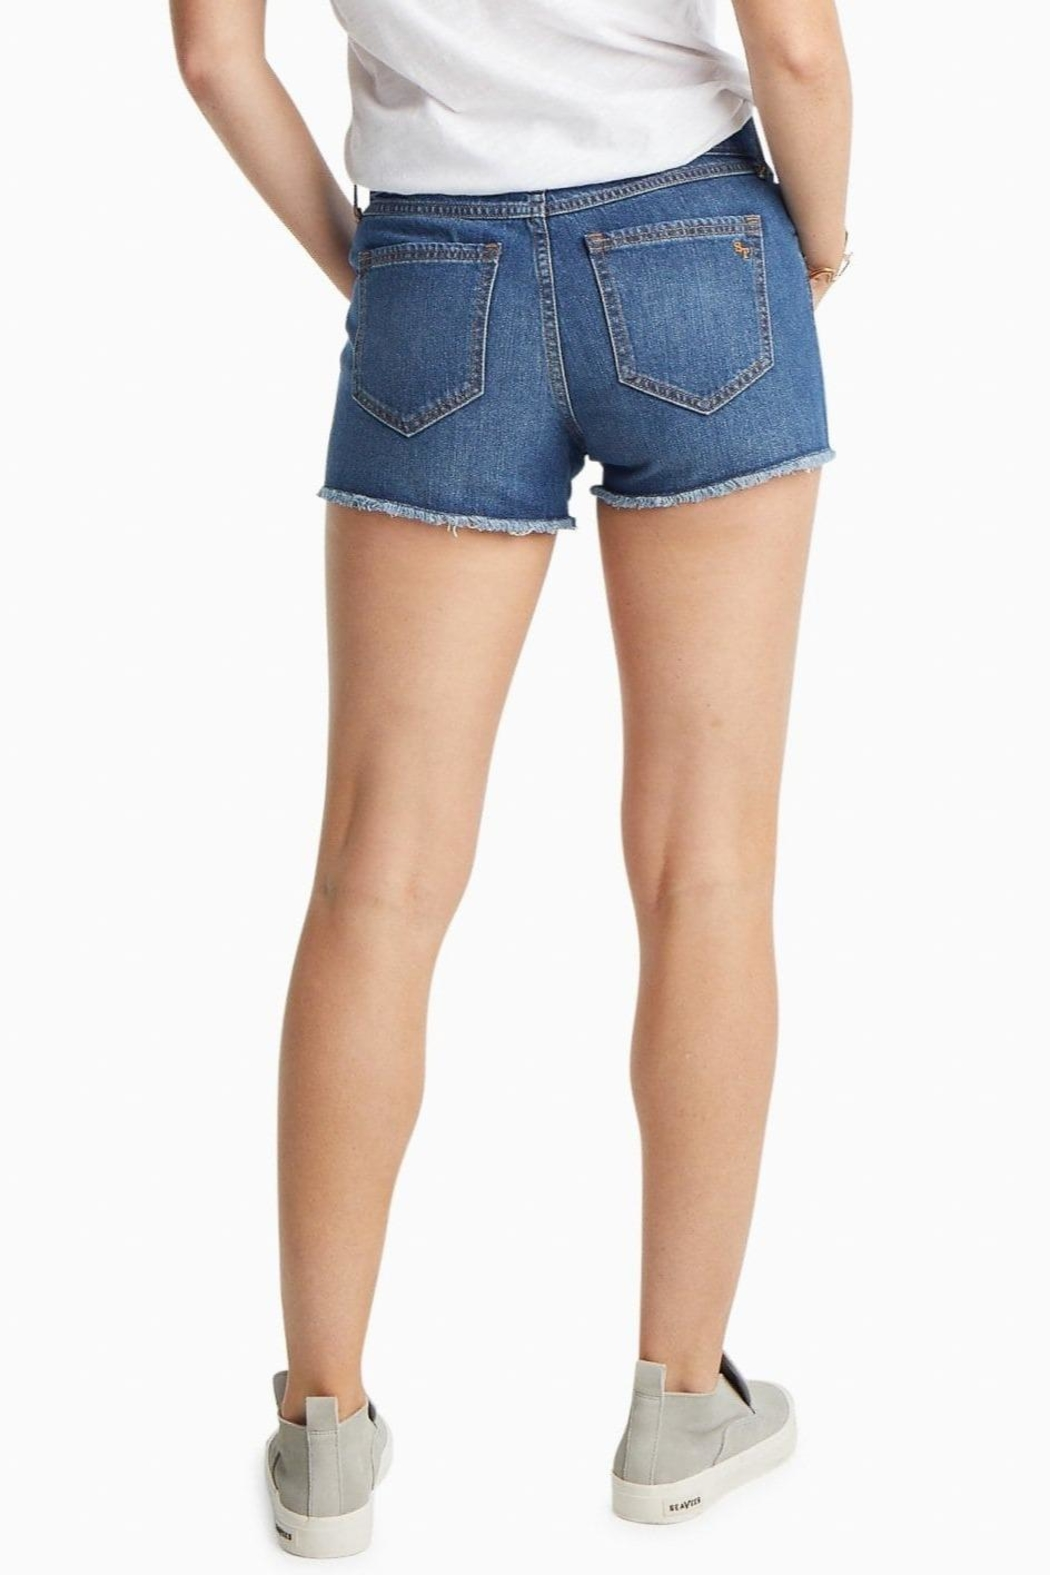 Southern Tide Hayes Jean Short - Front Full Image